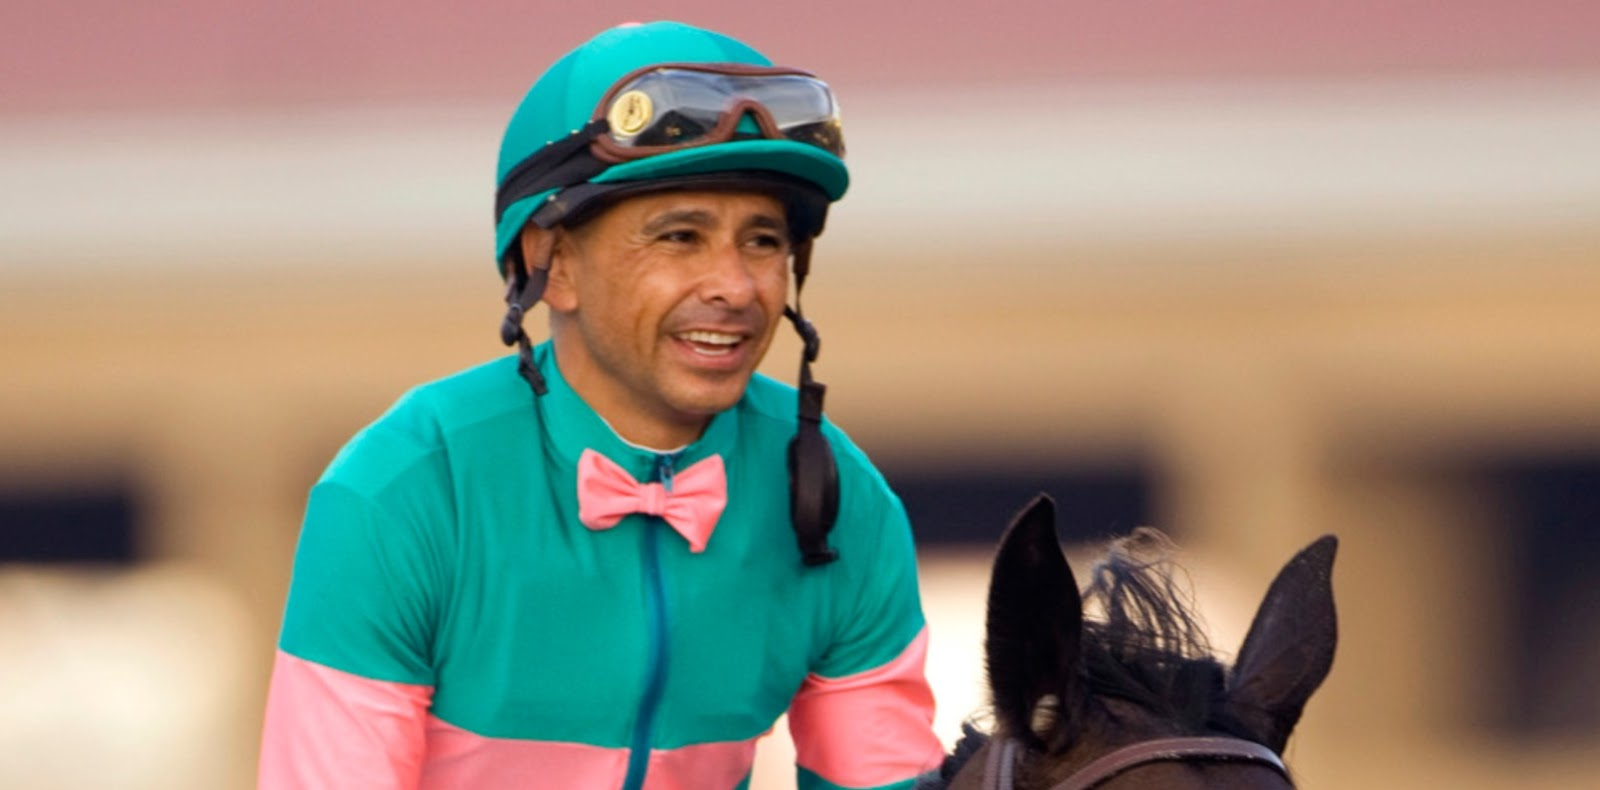 Mike Earl Smith second richest jockey in the world